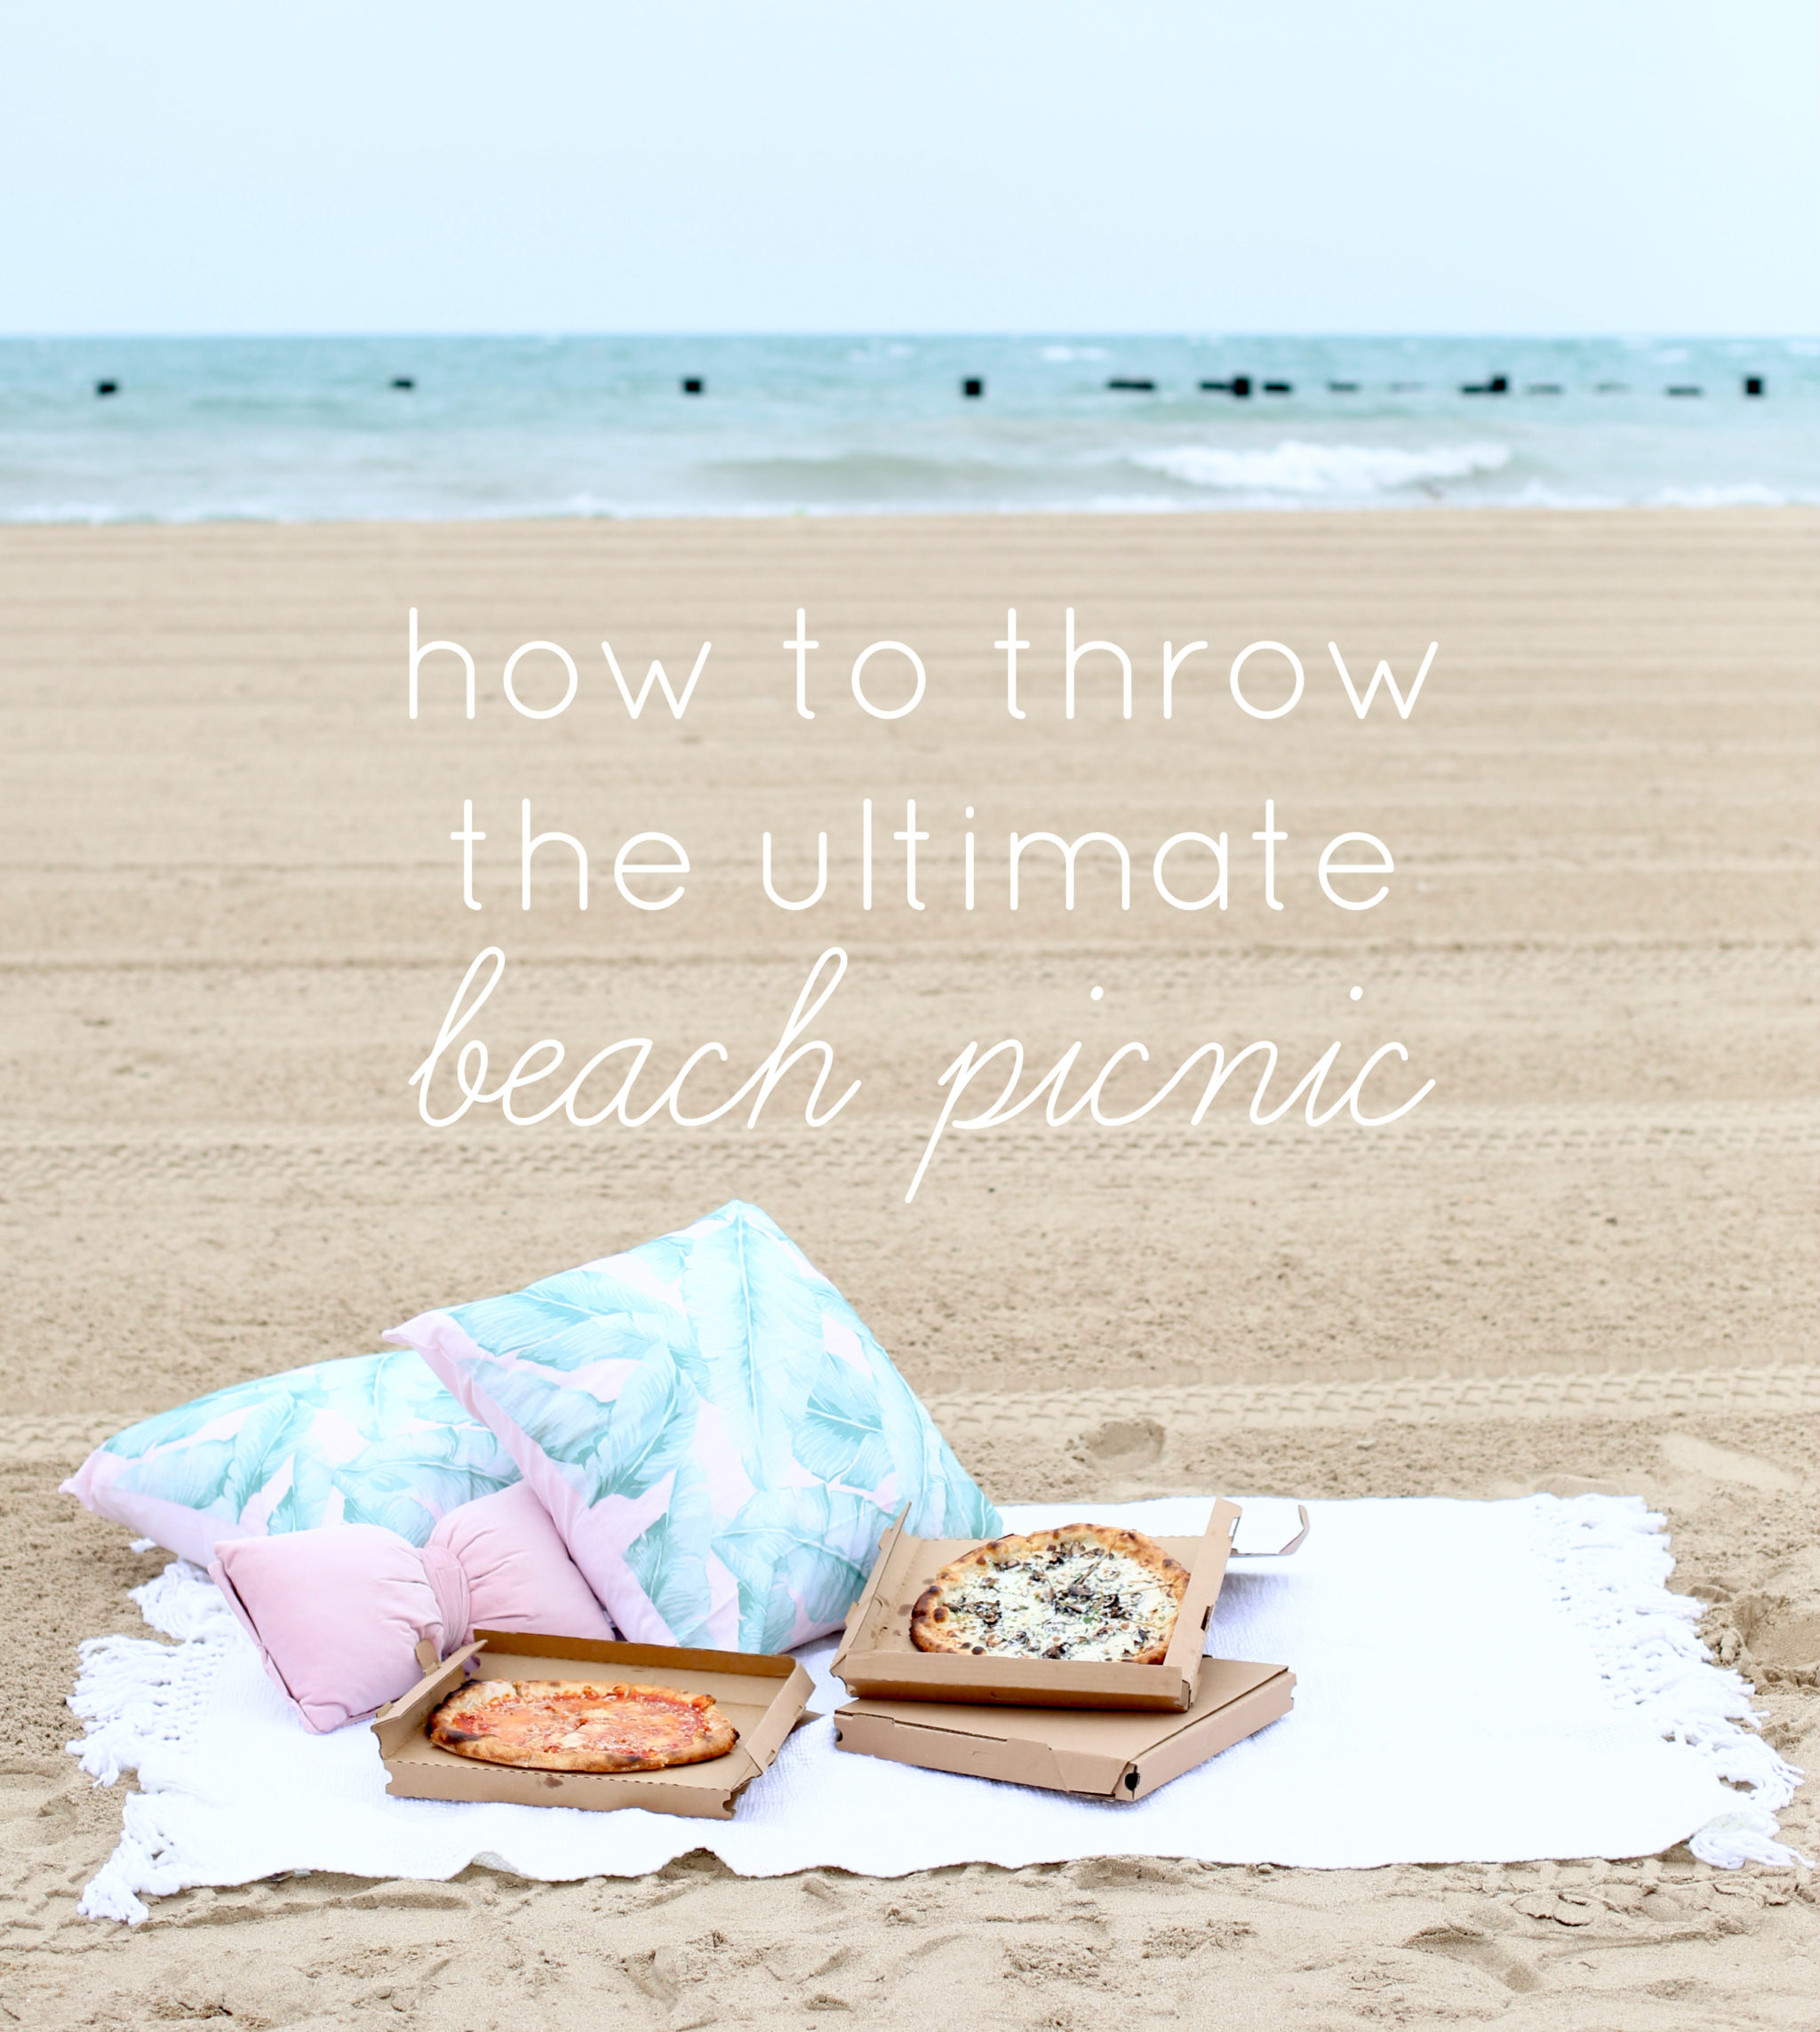 HOW TO THROW THE ULTIMATE BEACH PICNIC